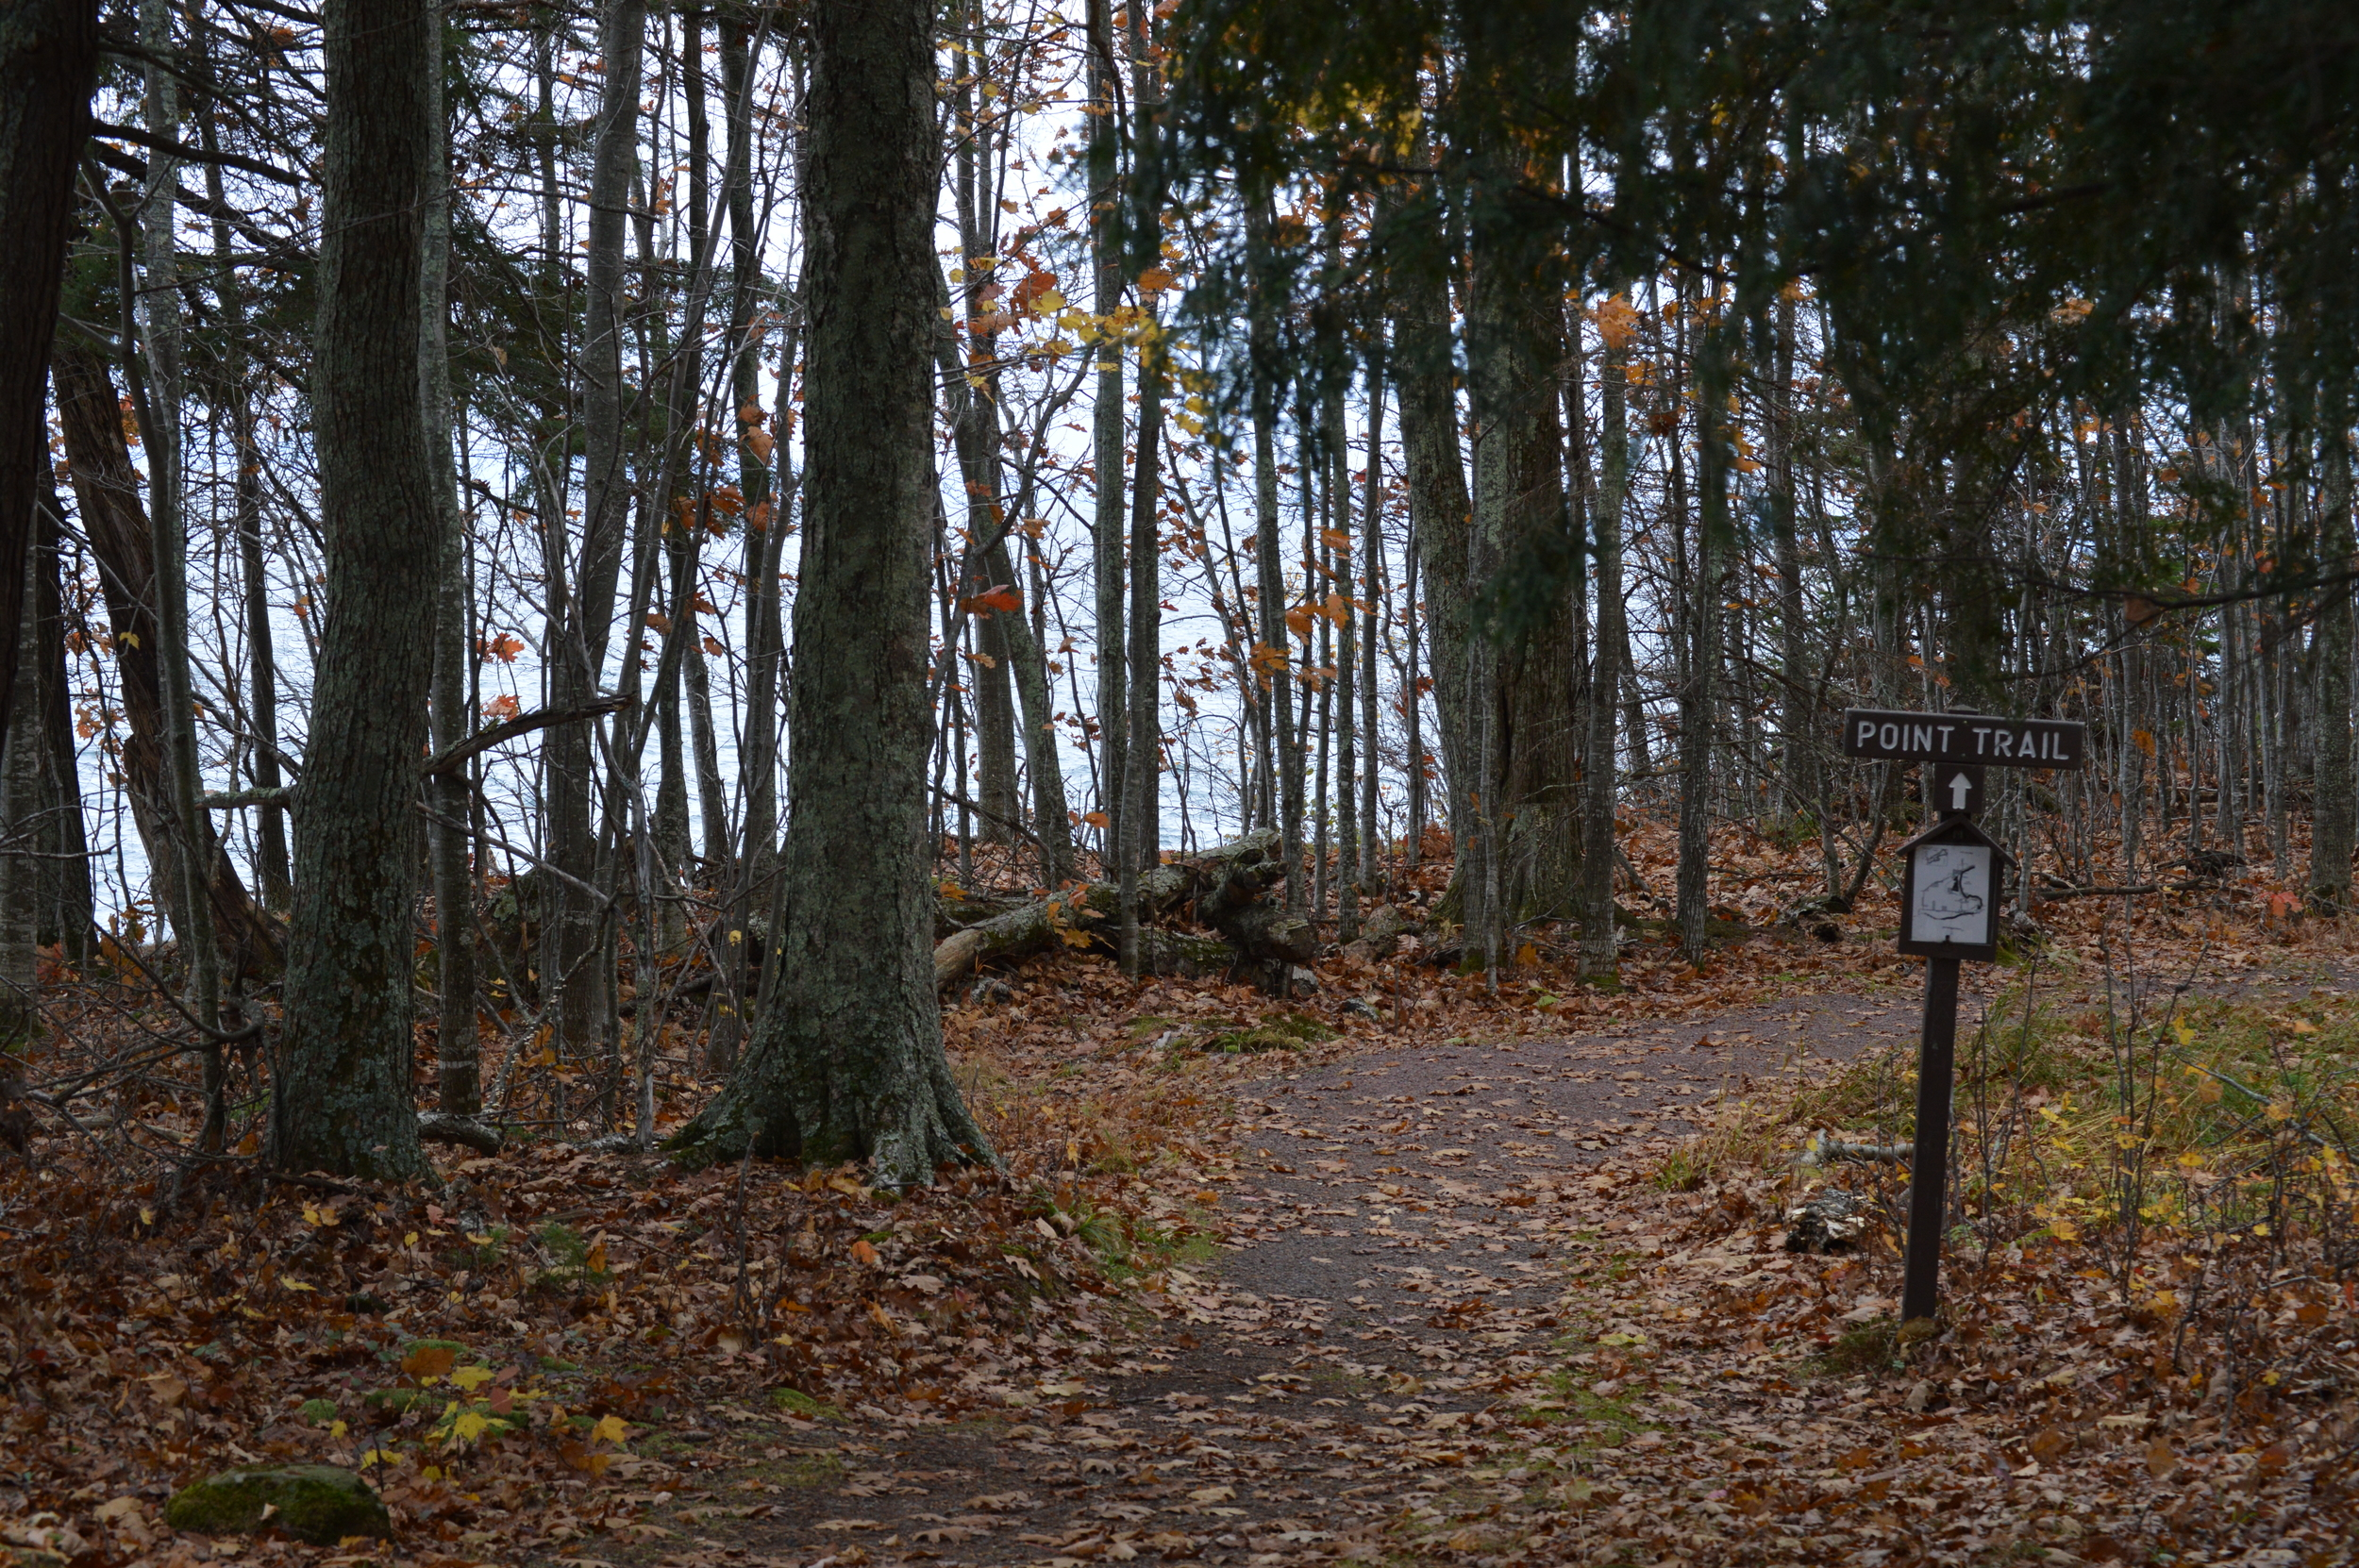 Trail on South Side of The Point